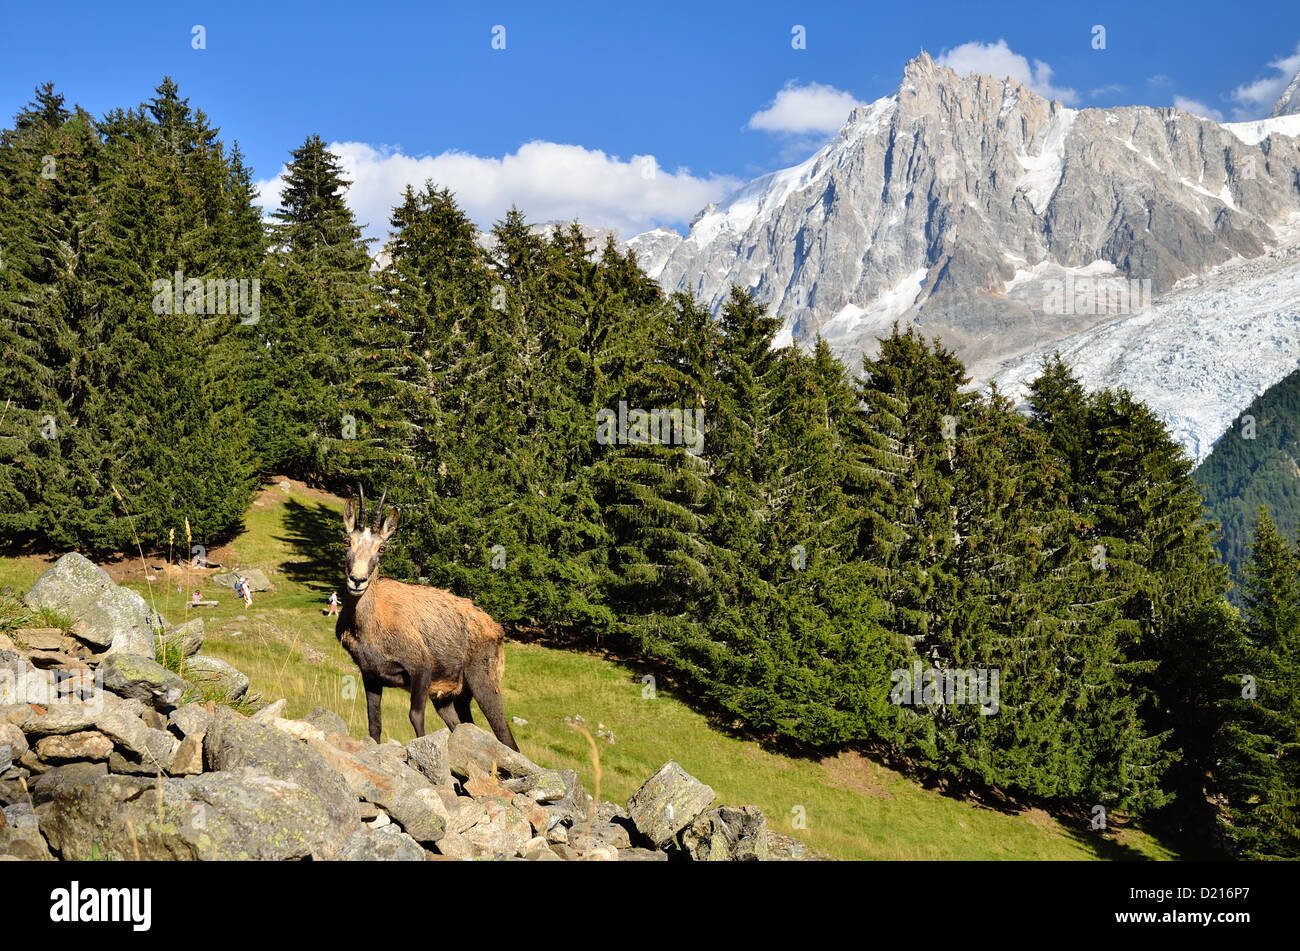 Chamois on Mont Blanc Massif in France, with Aiguille du Midi in background. - Stock Image